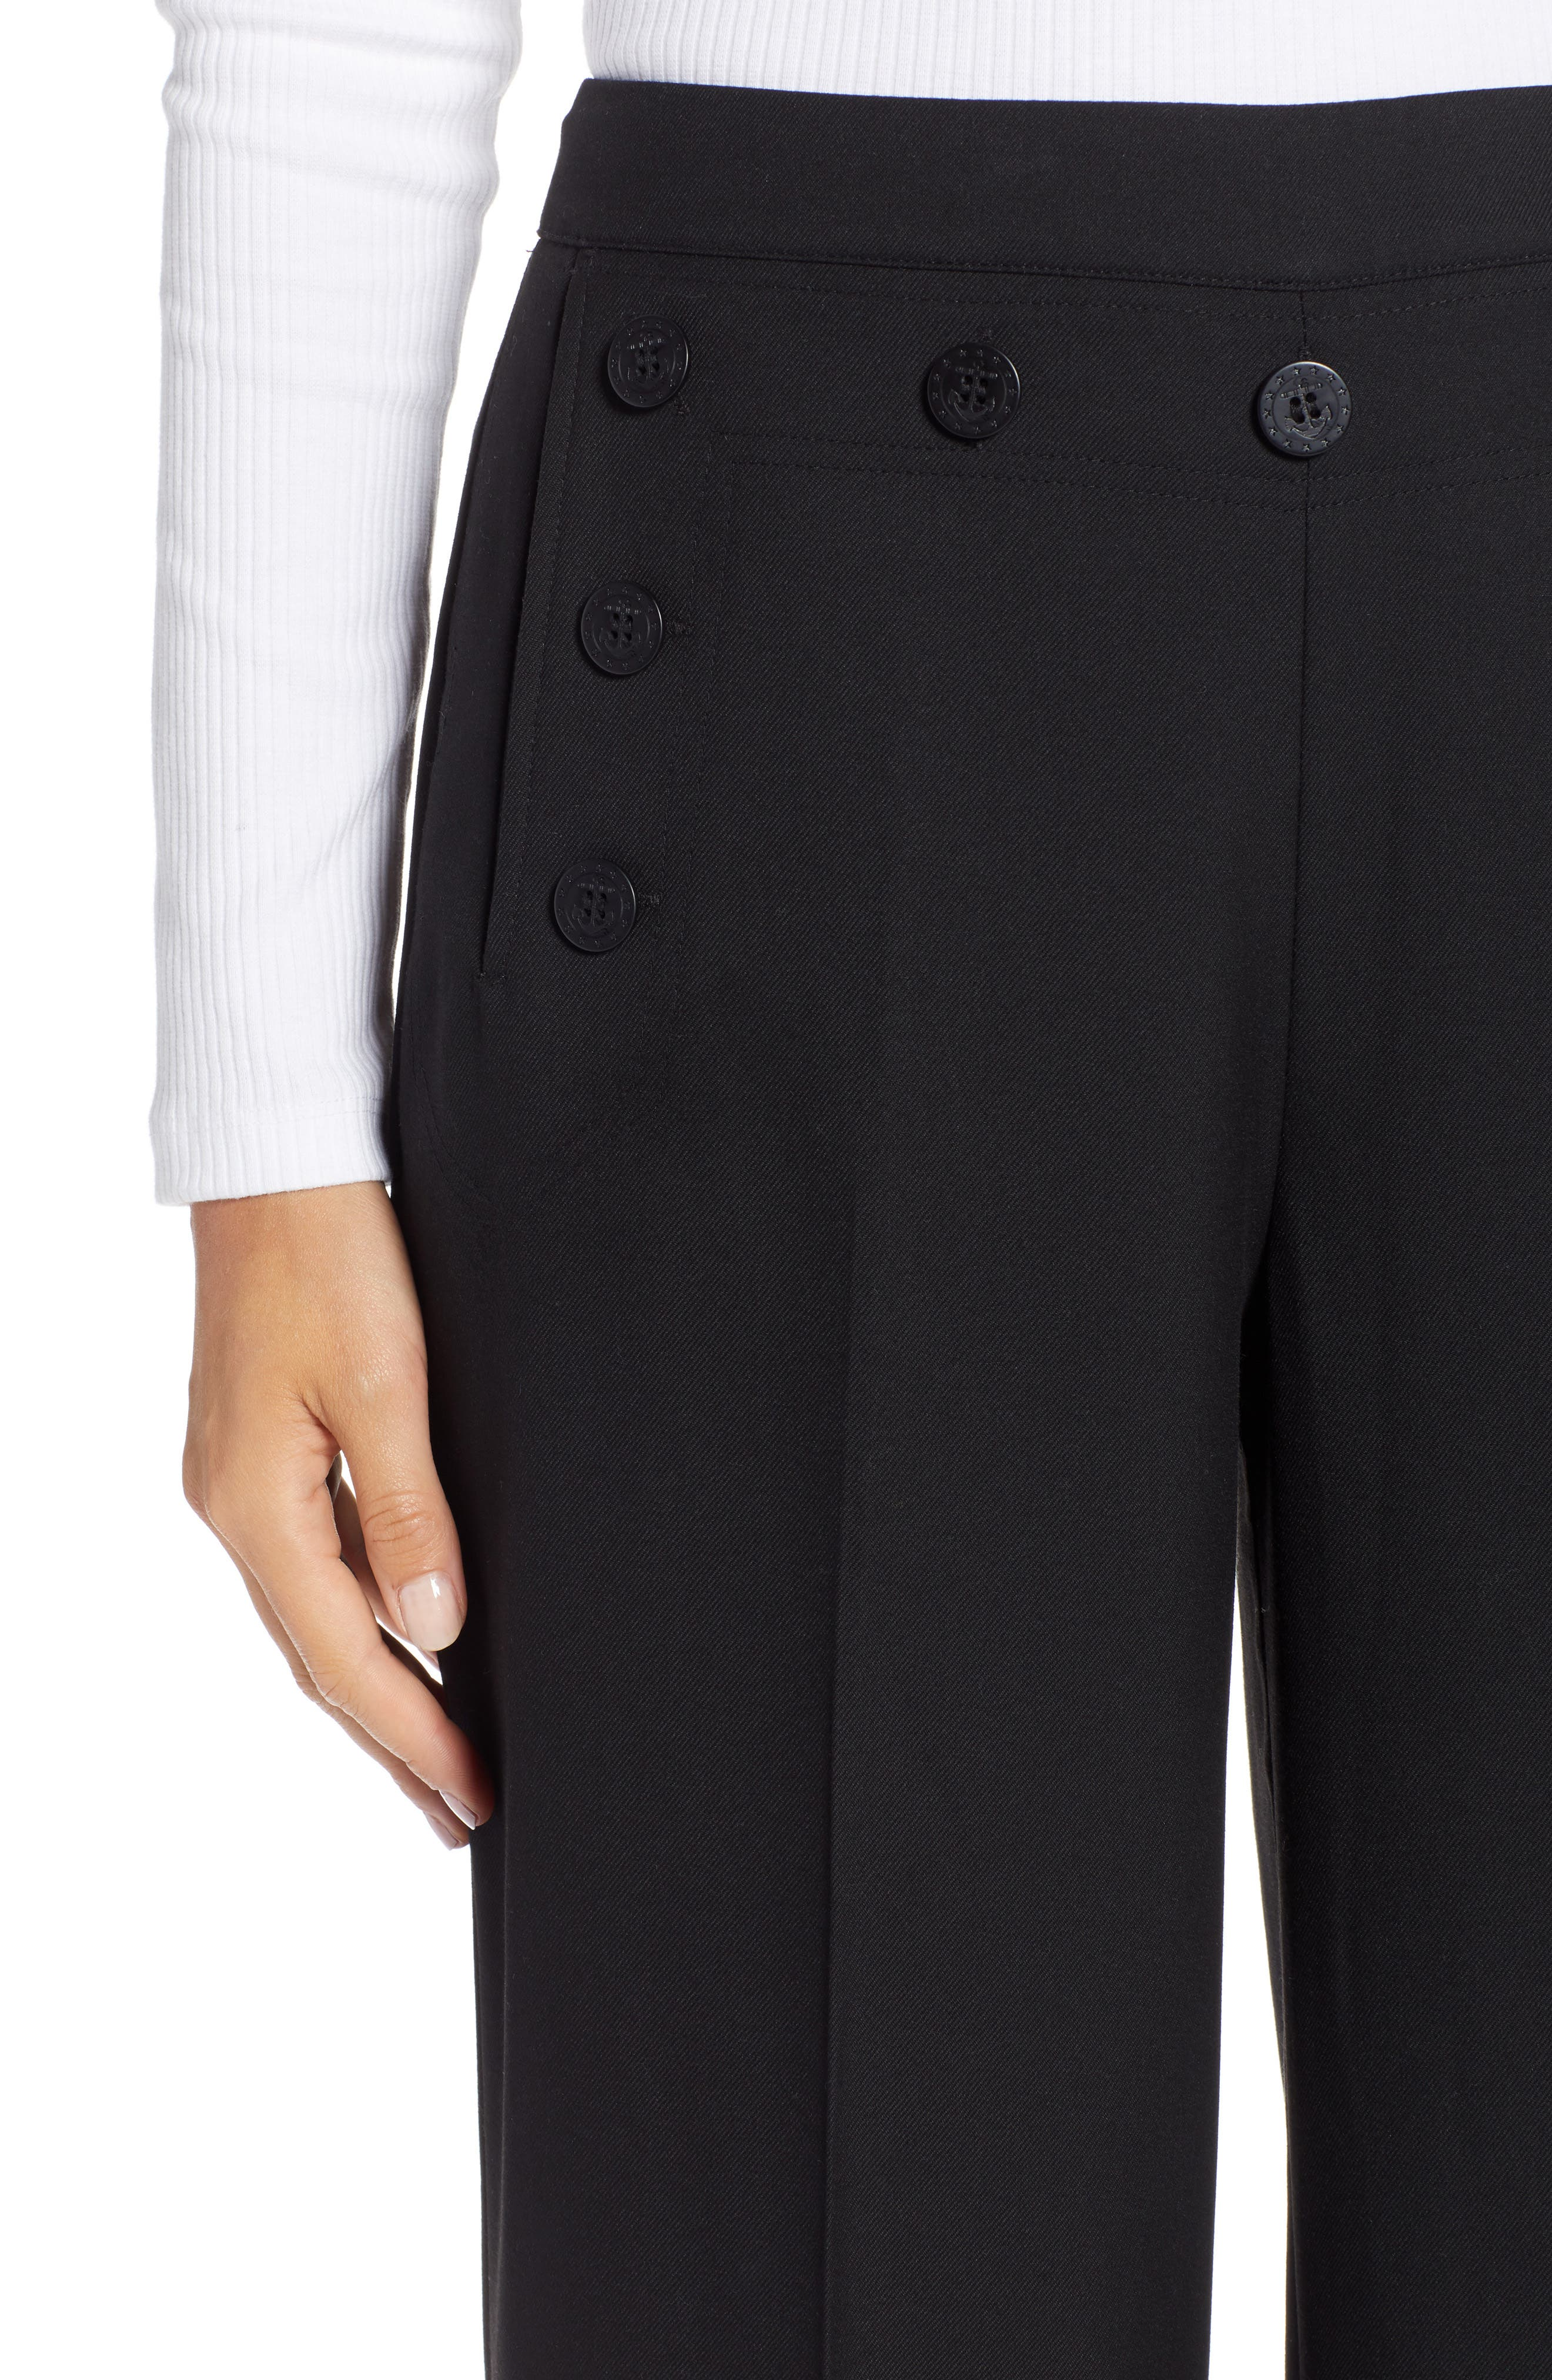 Button Detail Wide Leg Sailor Pants,                             Alternate thumbnail 4, color,                             001